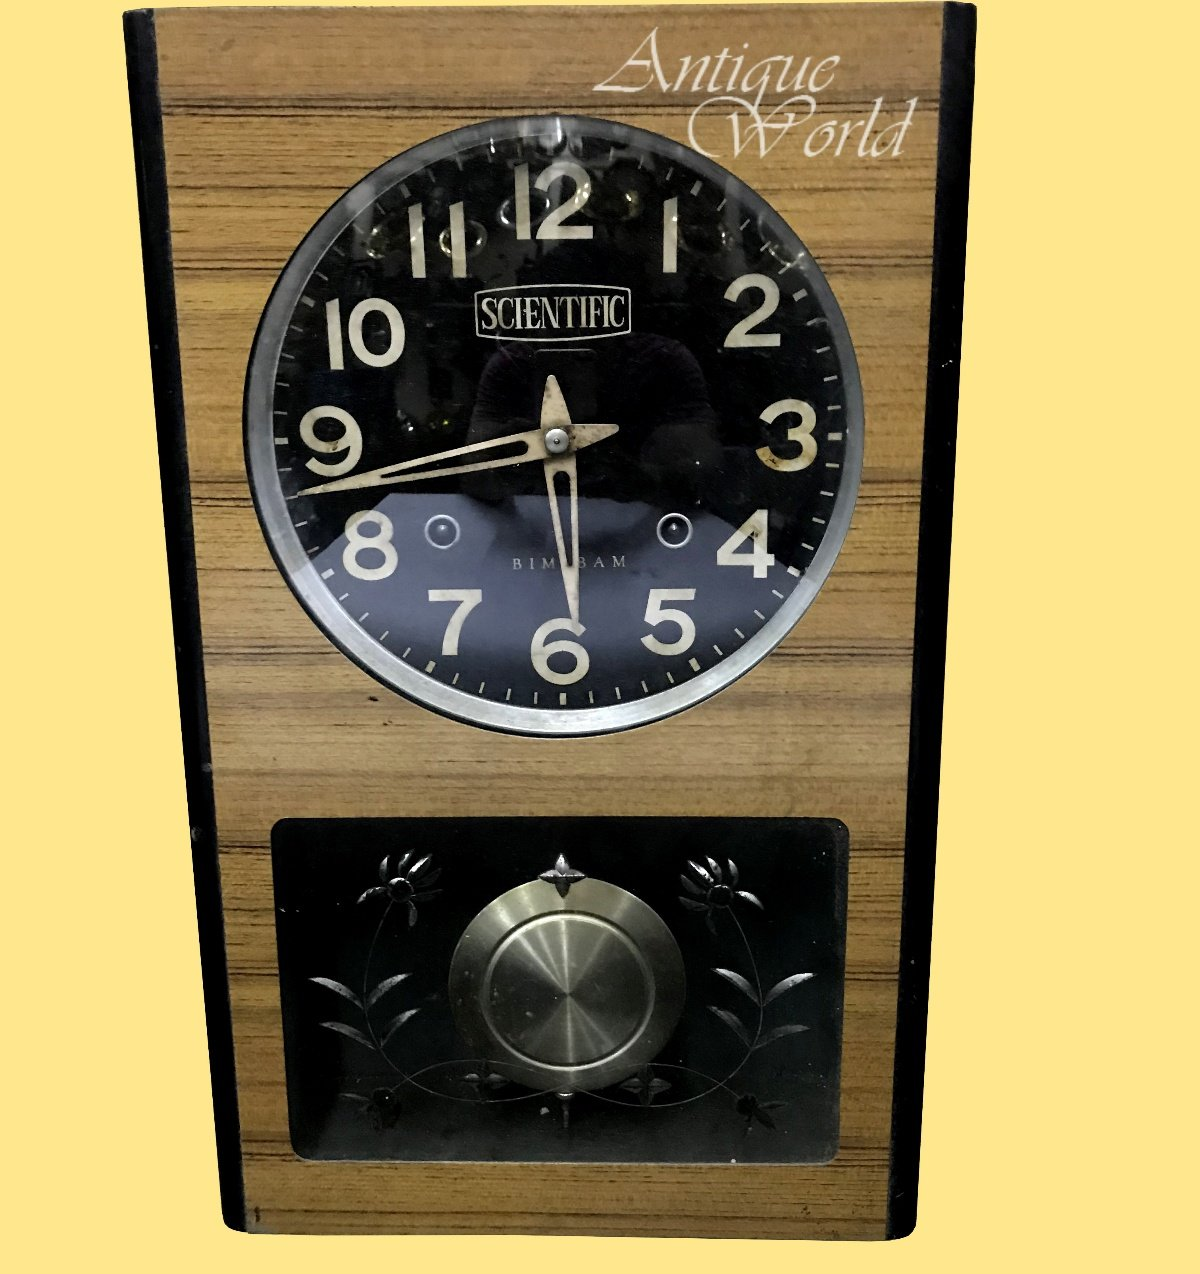 Antiques World Original Rare Time Piece Antique Collectible Clocks 20th Century Stylized Watch Home & Wall Décor Vintage Genuine Scientific Wind Up Bim – Bam Wall Clock AWUSAHB 0194